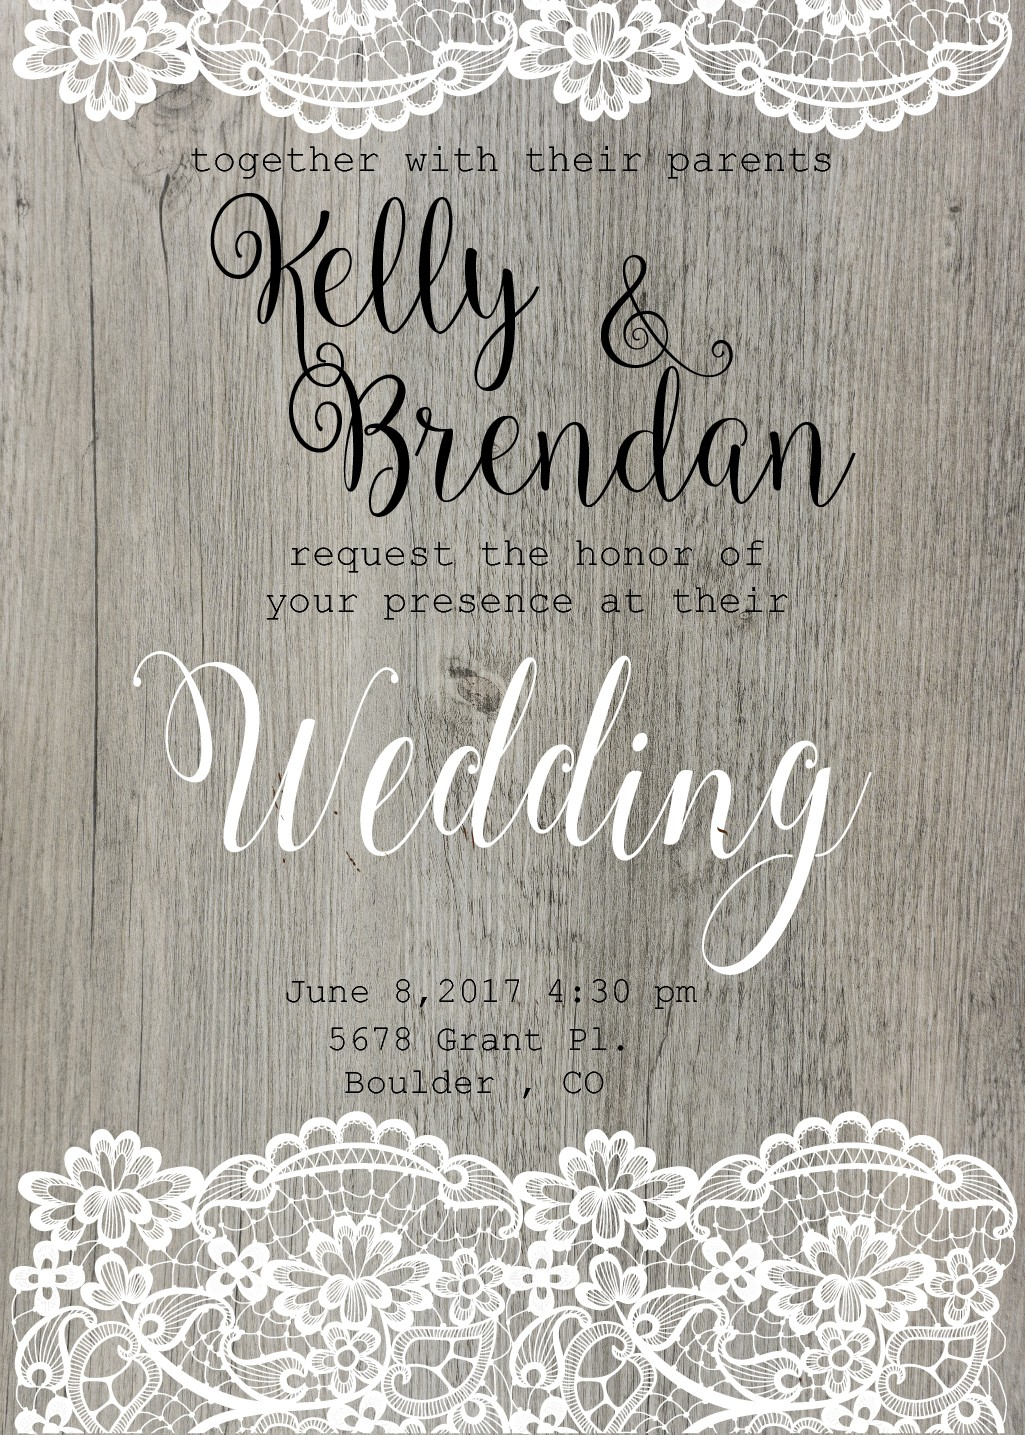 Carved Wooden Wedding Invite Design!